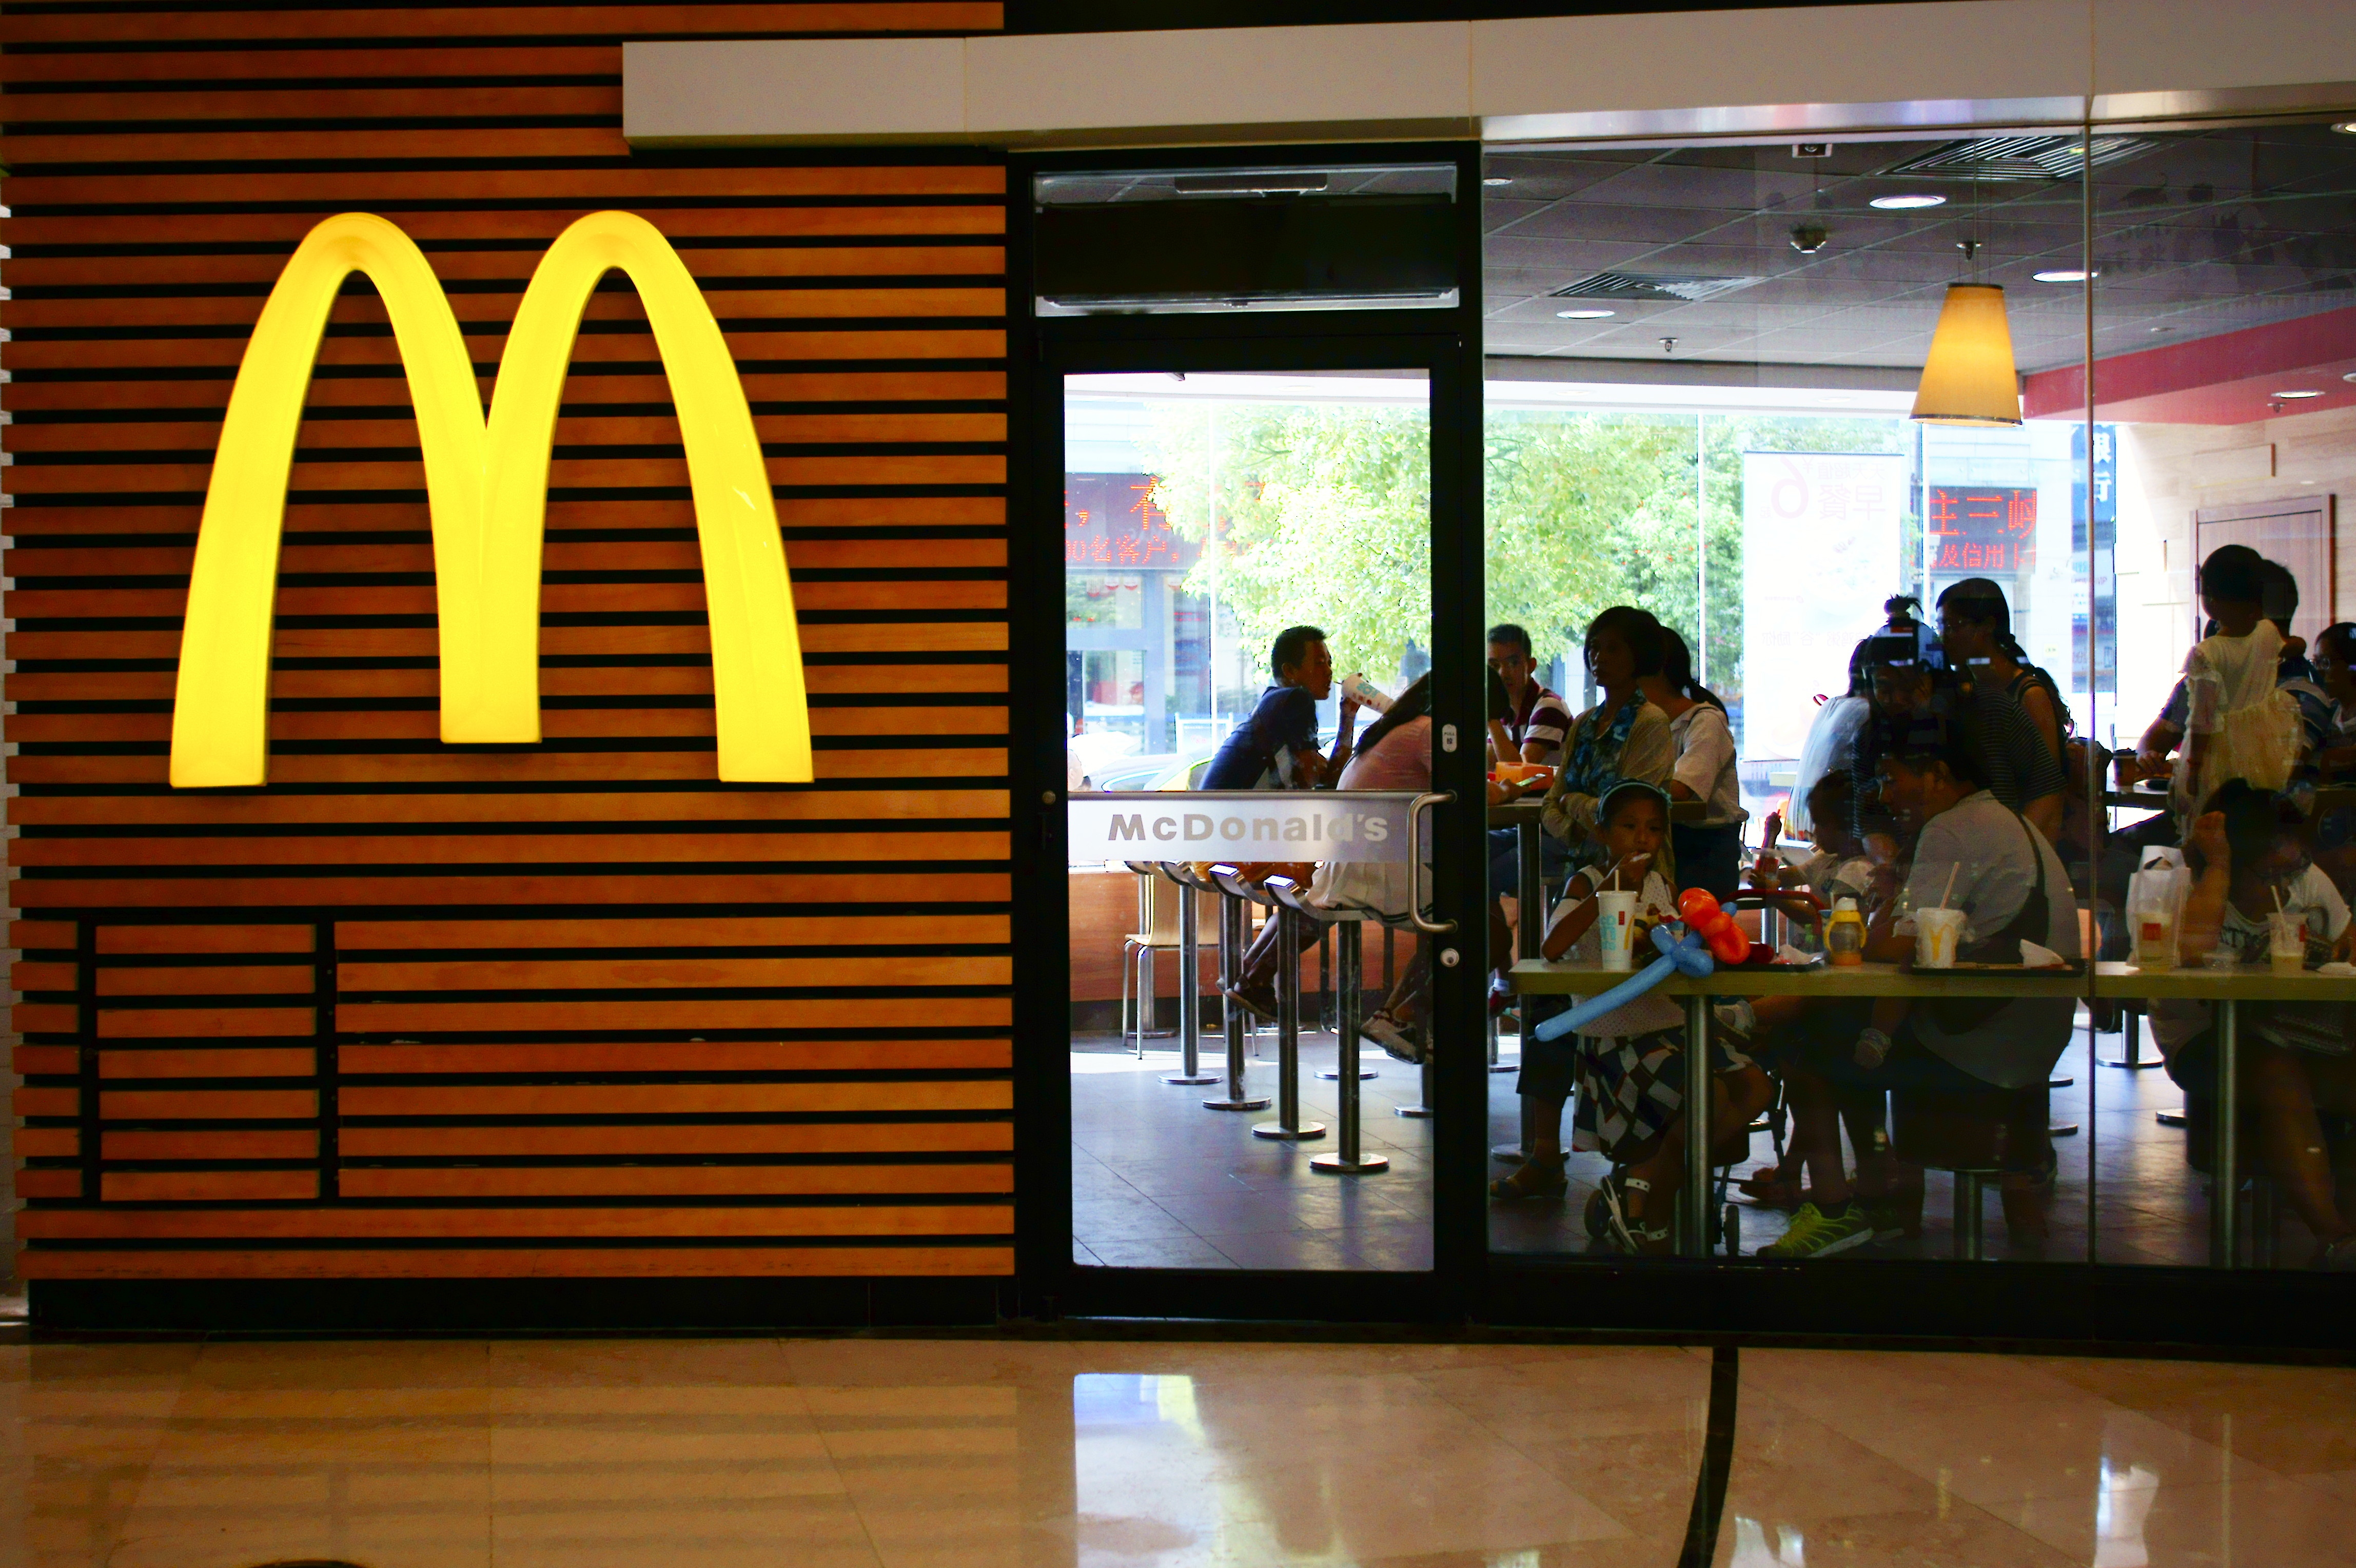 McDonald's China franchise deal could fetch up to $2 billion up front